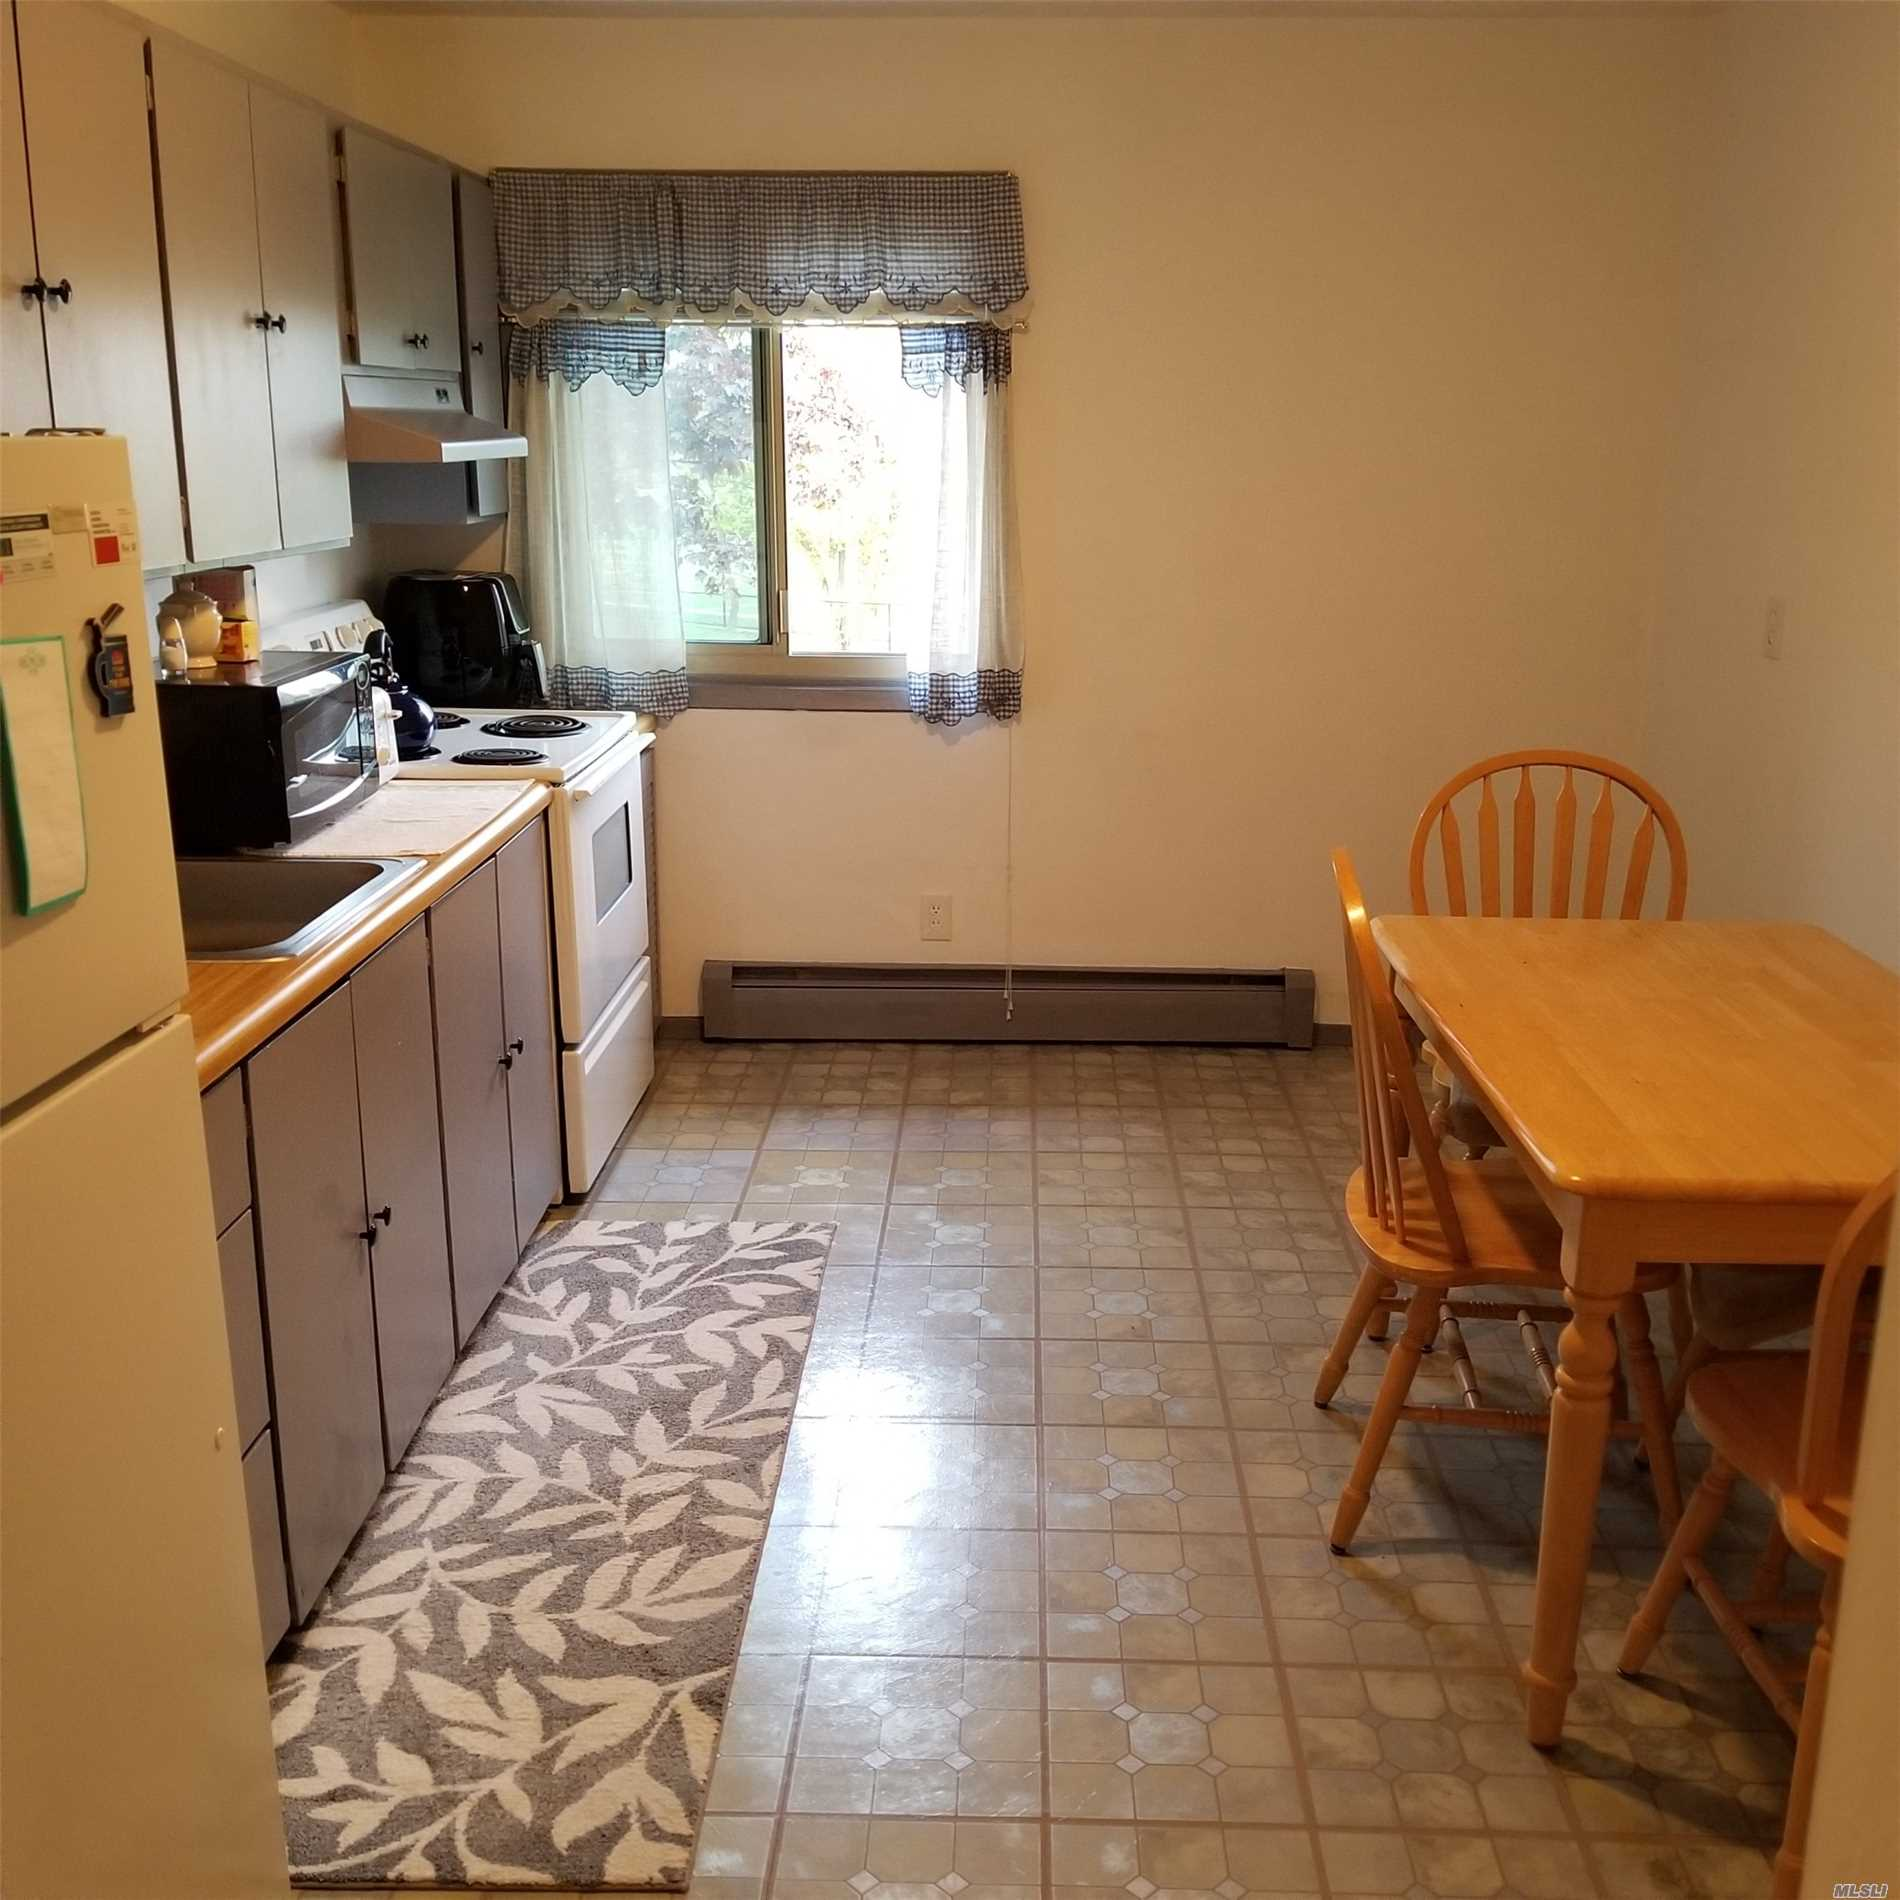 Bright, Clean 2nd Floor Unit. Large Eat In Kitchen, Living Room, Queen Bedroom. Southern Exposure, Pool, Gym Clubhouse. Pet Friendly! Why Rent When You Can Own For So Much Less!